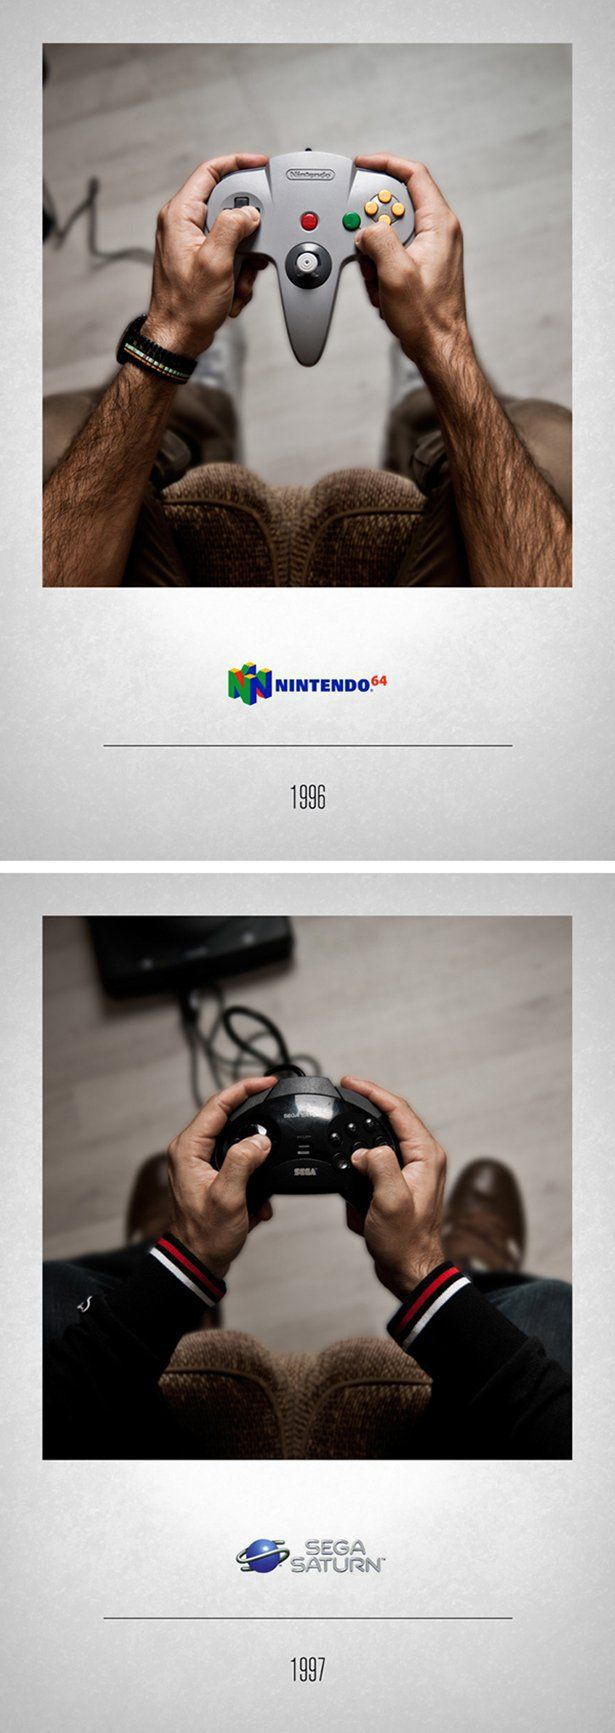 how_video_game_controllers_have_changed_over_the_years_640_high_10